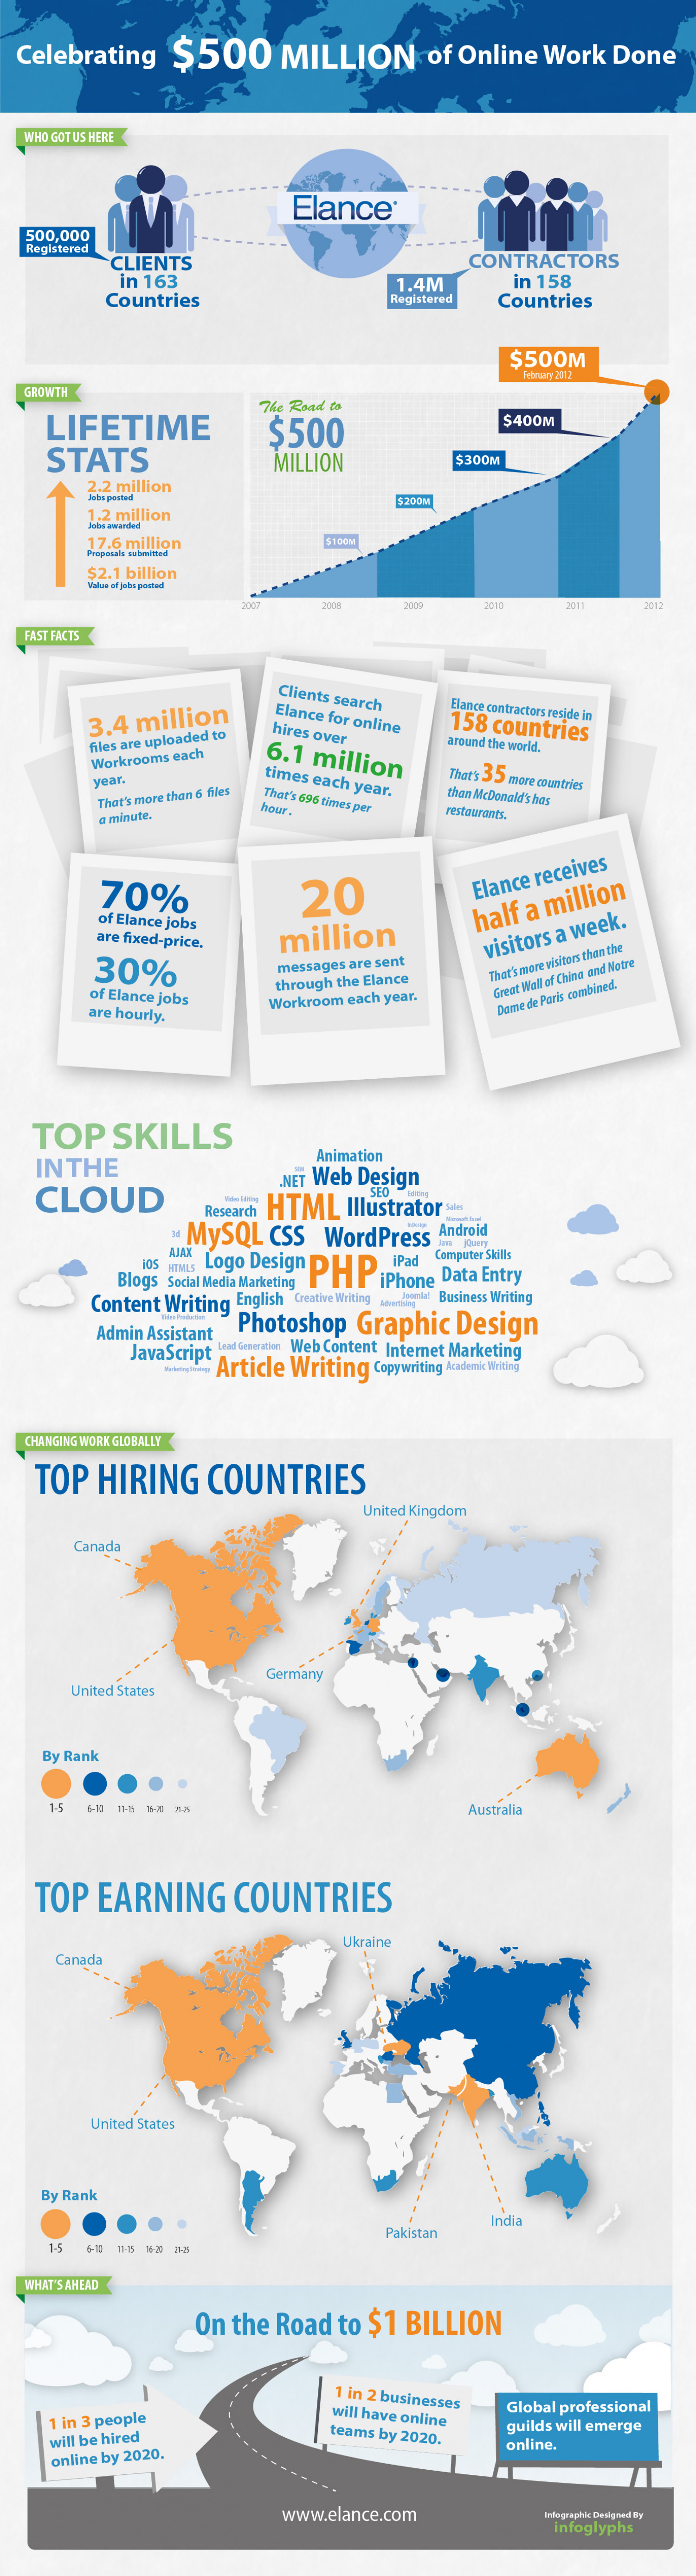 Celebrating $500 Million of Online Work Done Infographic